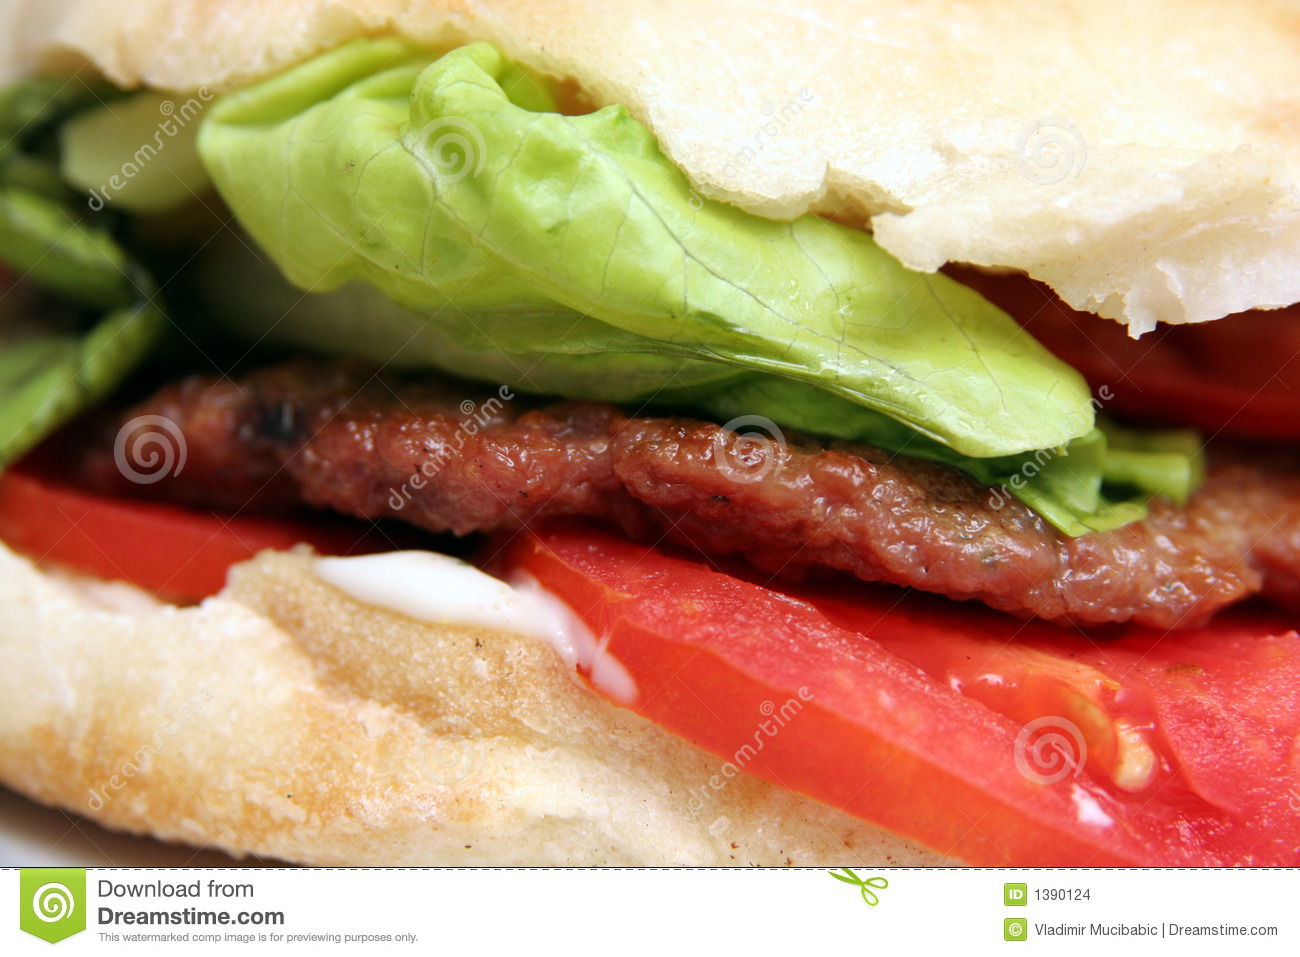 Stock Images  Grilled meat patty  hamburgerGrilled Hamburger Patty